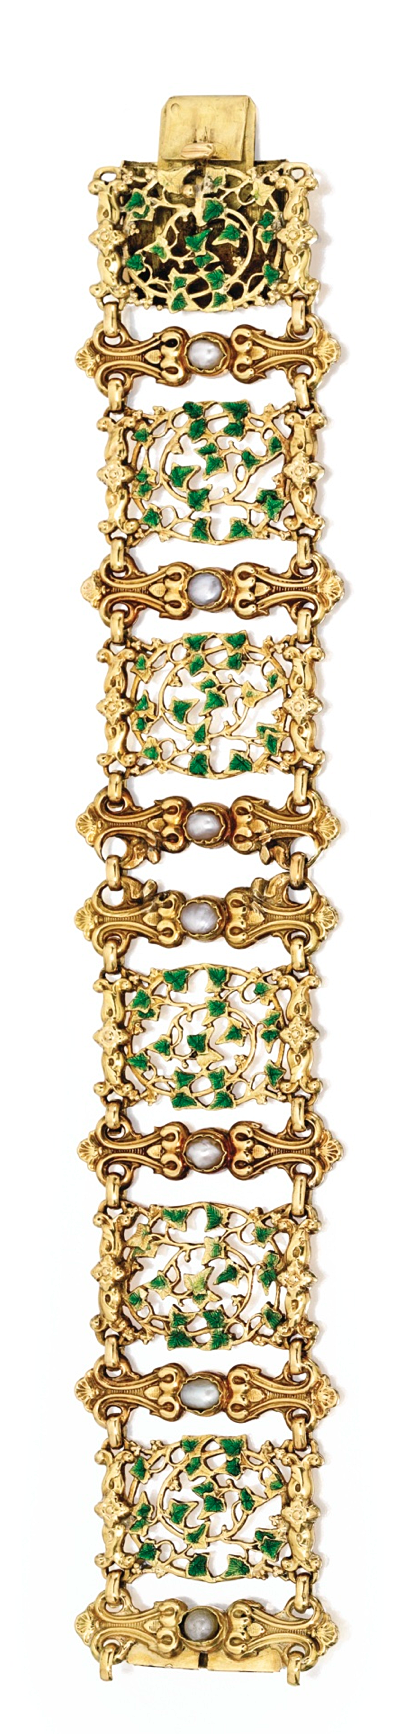 GOLD, SPLIT PEARL AND ENAMEL BRACELET The six-panel bracelet decorated with meandering ivy vines highlighted with green enamel, spaced by scrollwork motifs set with seven split pearls, length 6¾ inches, with French import mark; circa 1850.